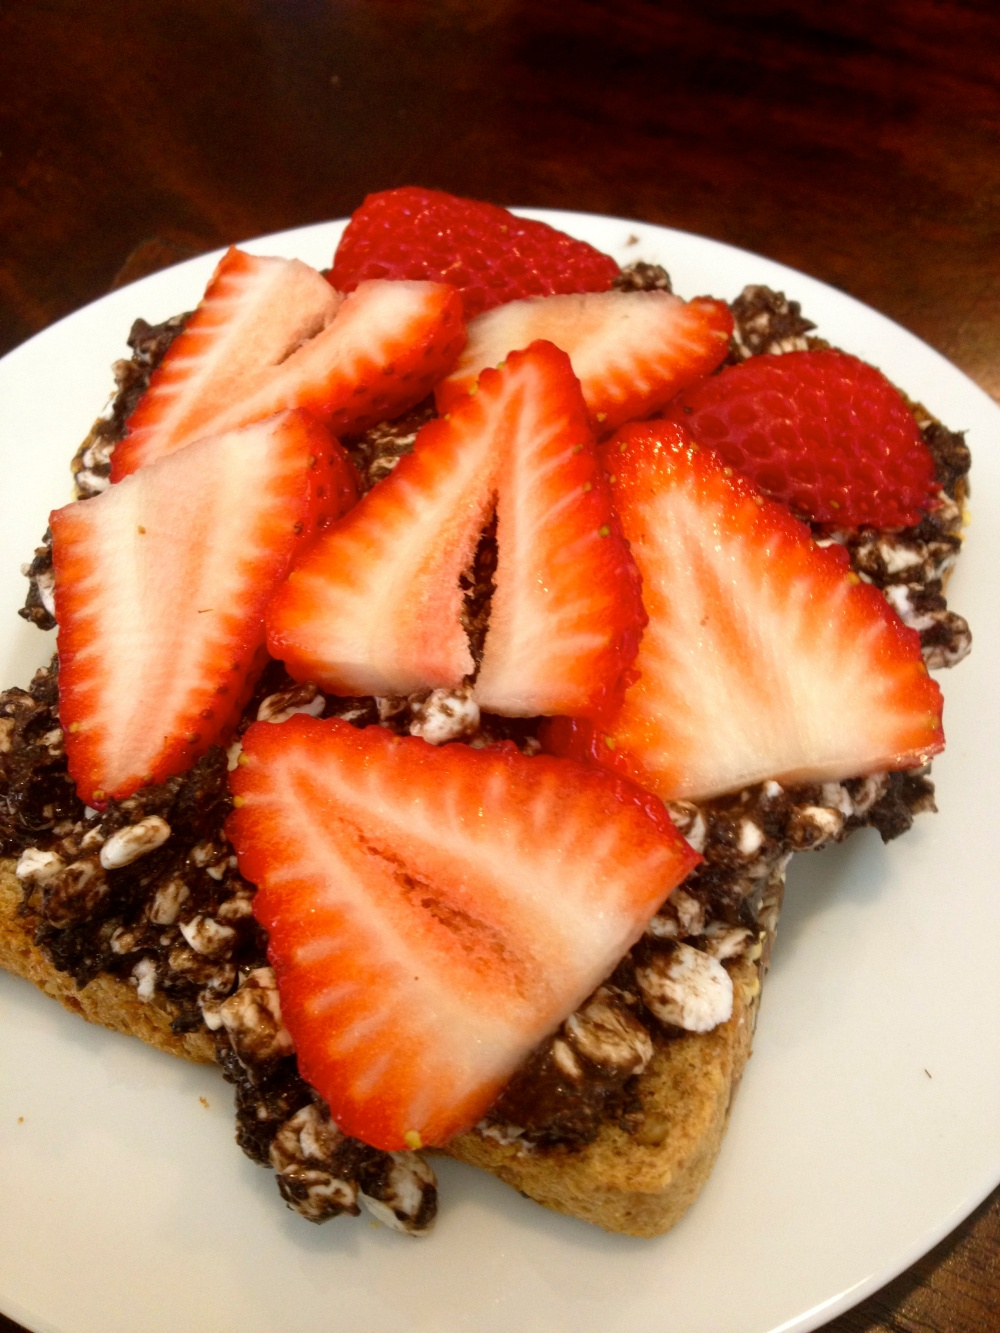 {{ Dark Chocolate Cottage Cheese Spread }} A Breakfast &/or Dessert Recipe: